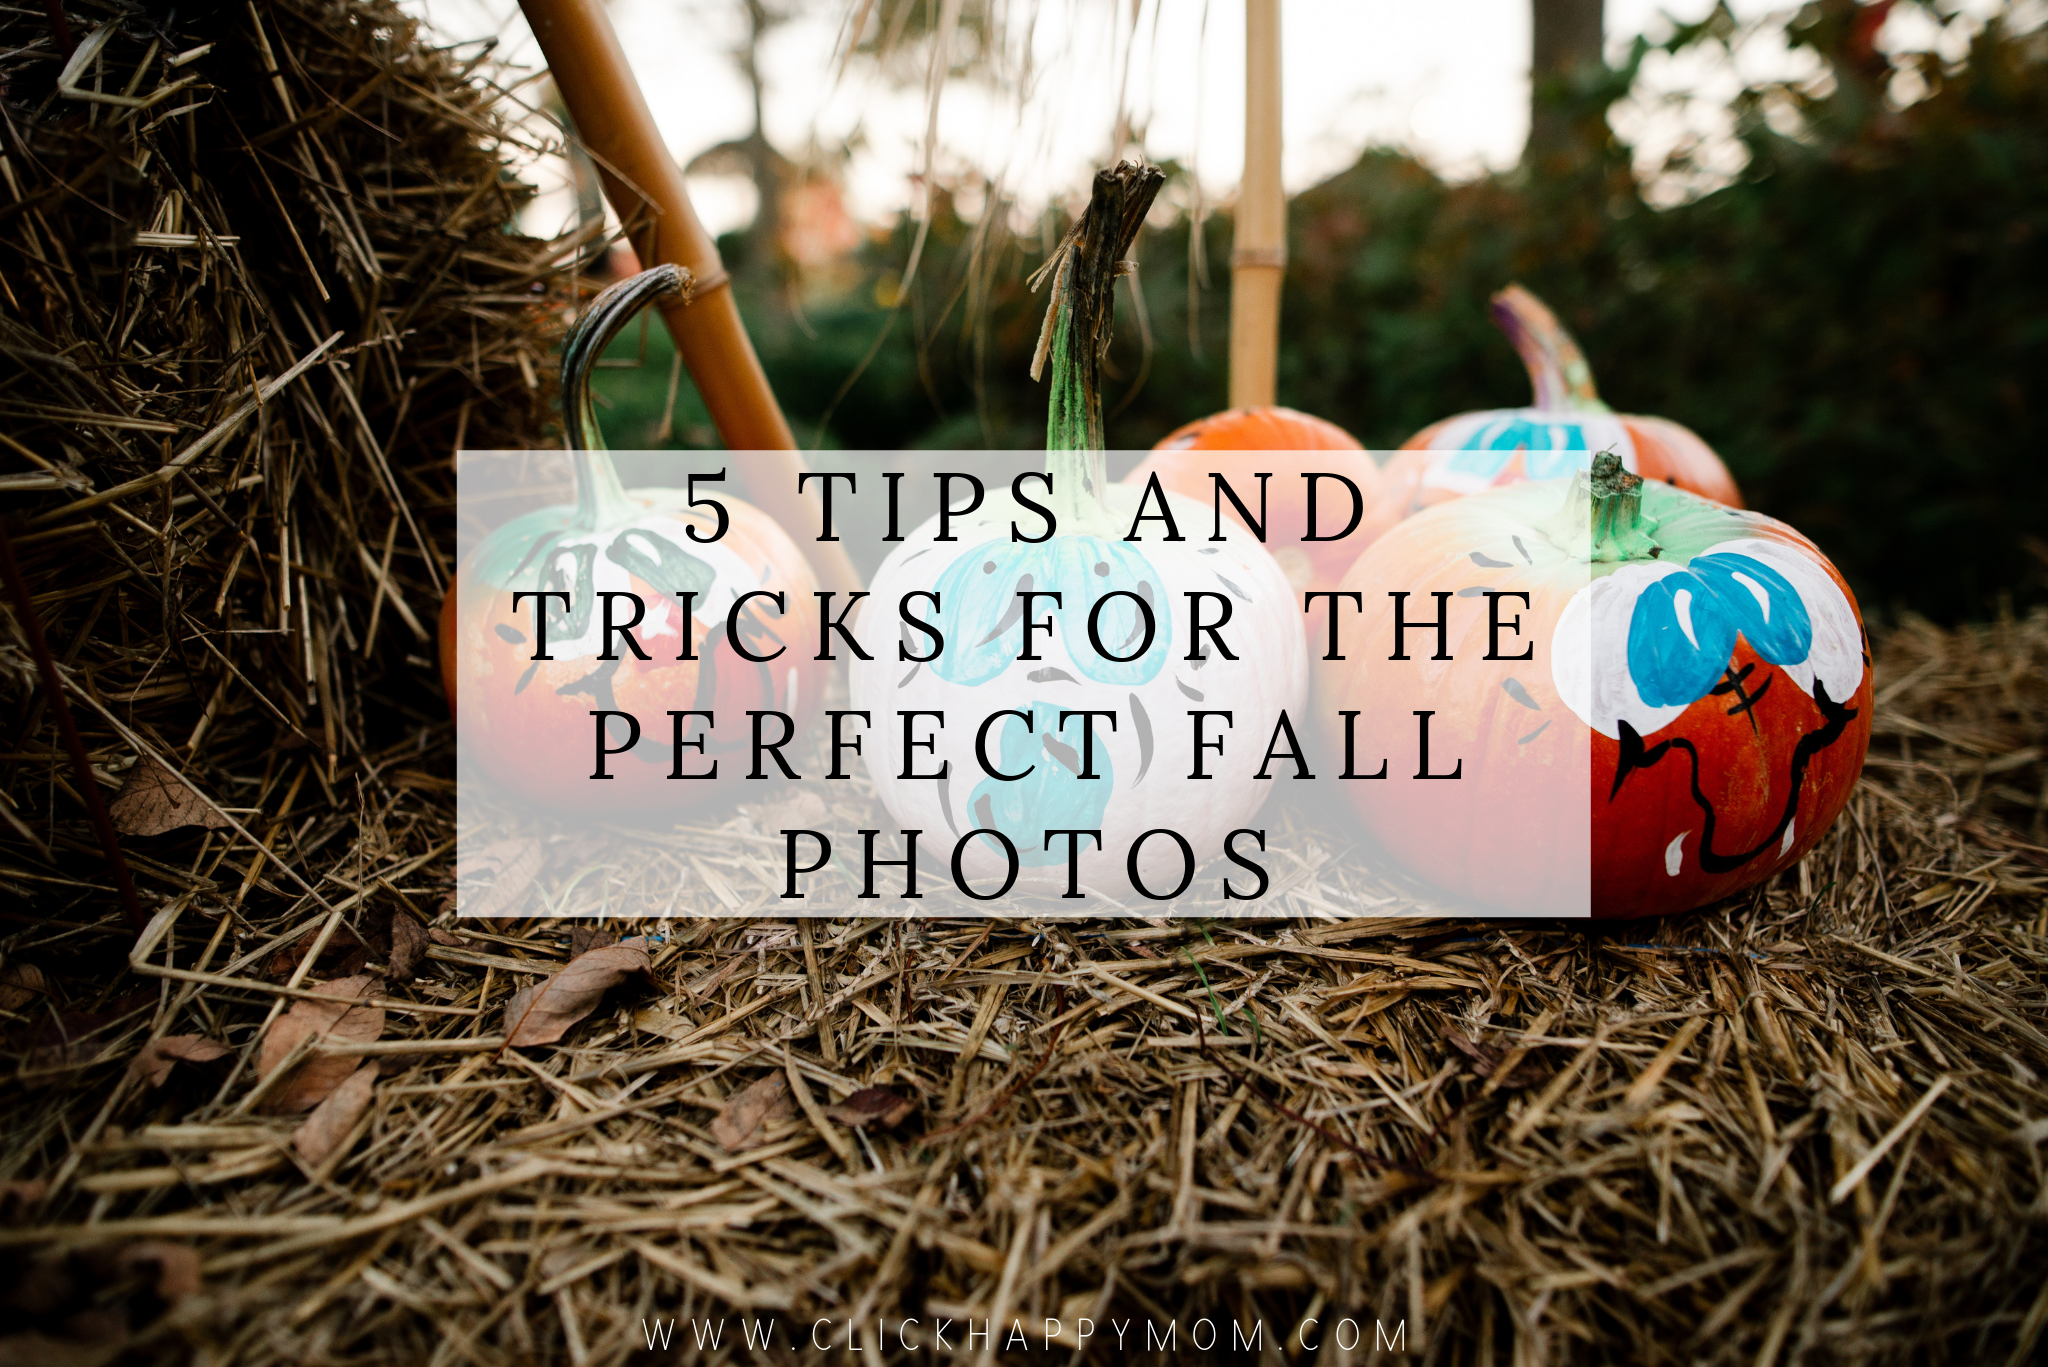 5 Tips and Tricks For the Perfect Fall Photos